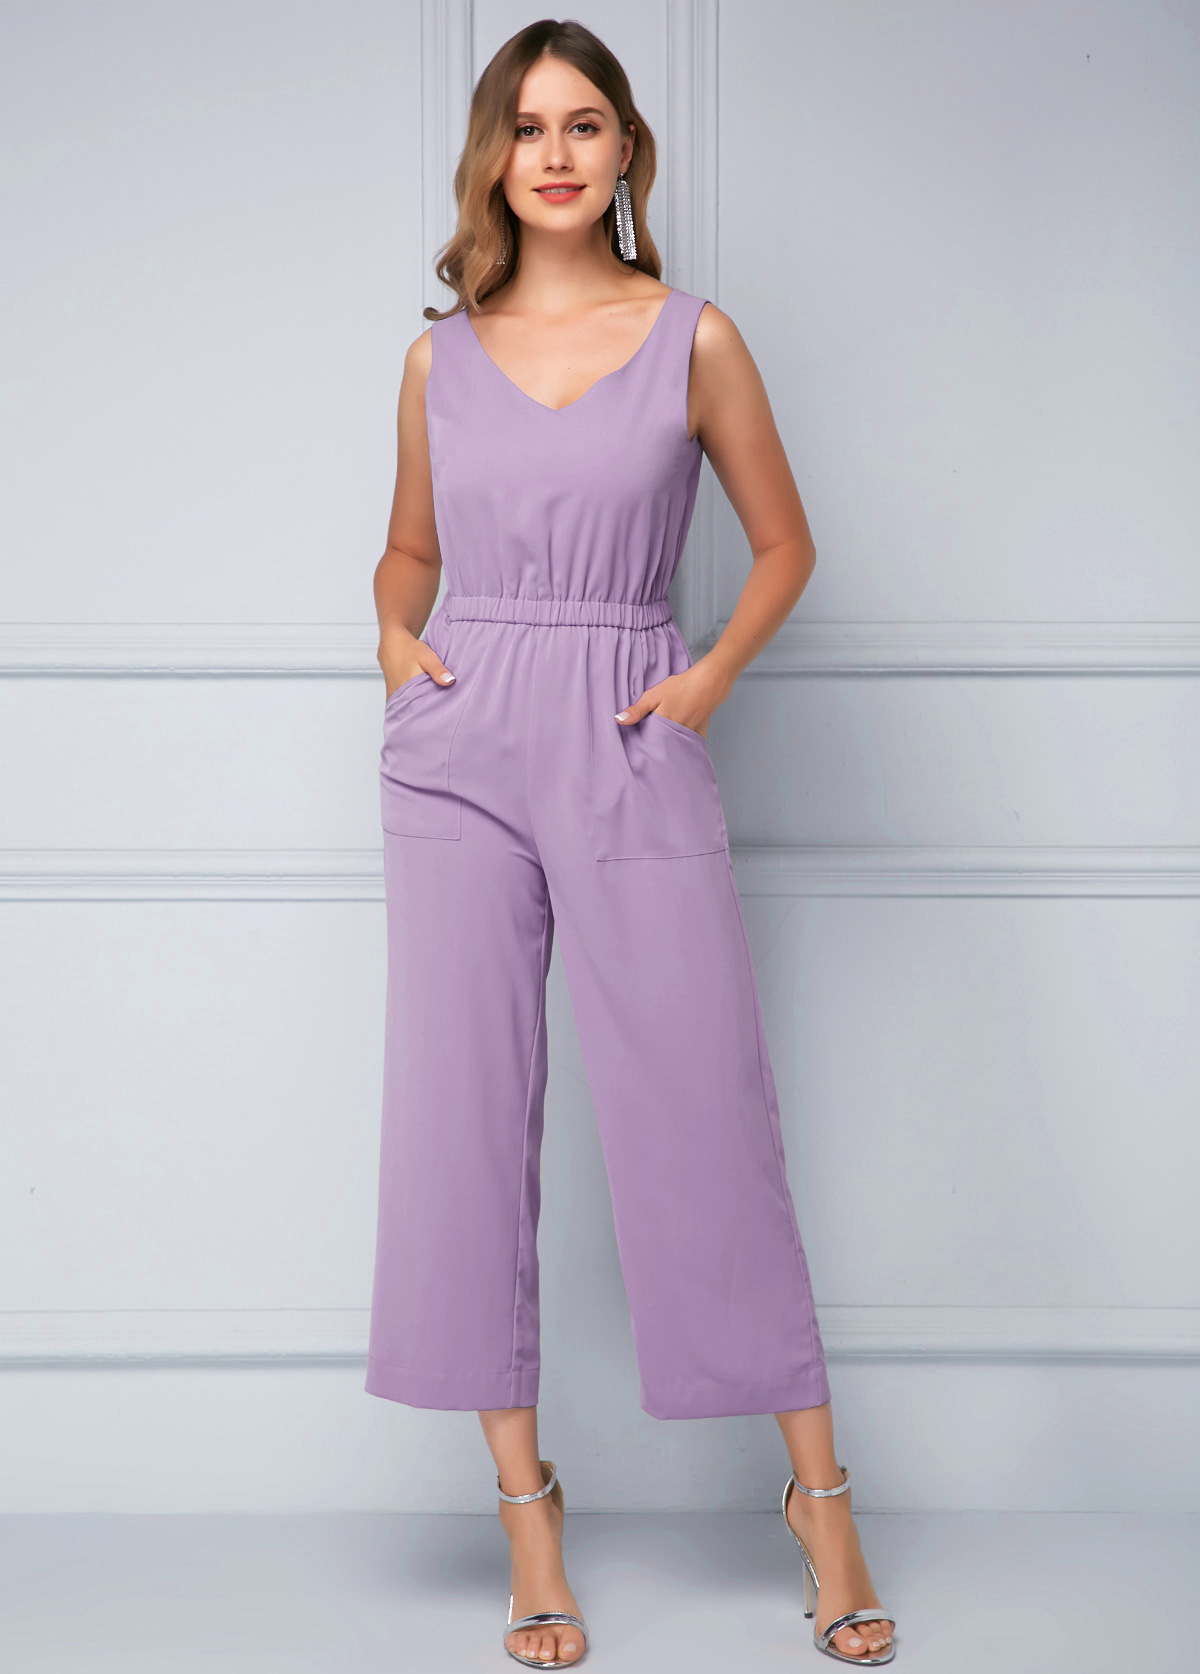 Soft Sleeveless Drawstring Waist Purple Jumpsuit